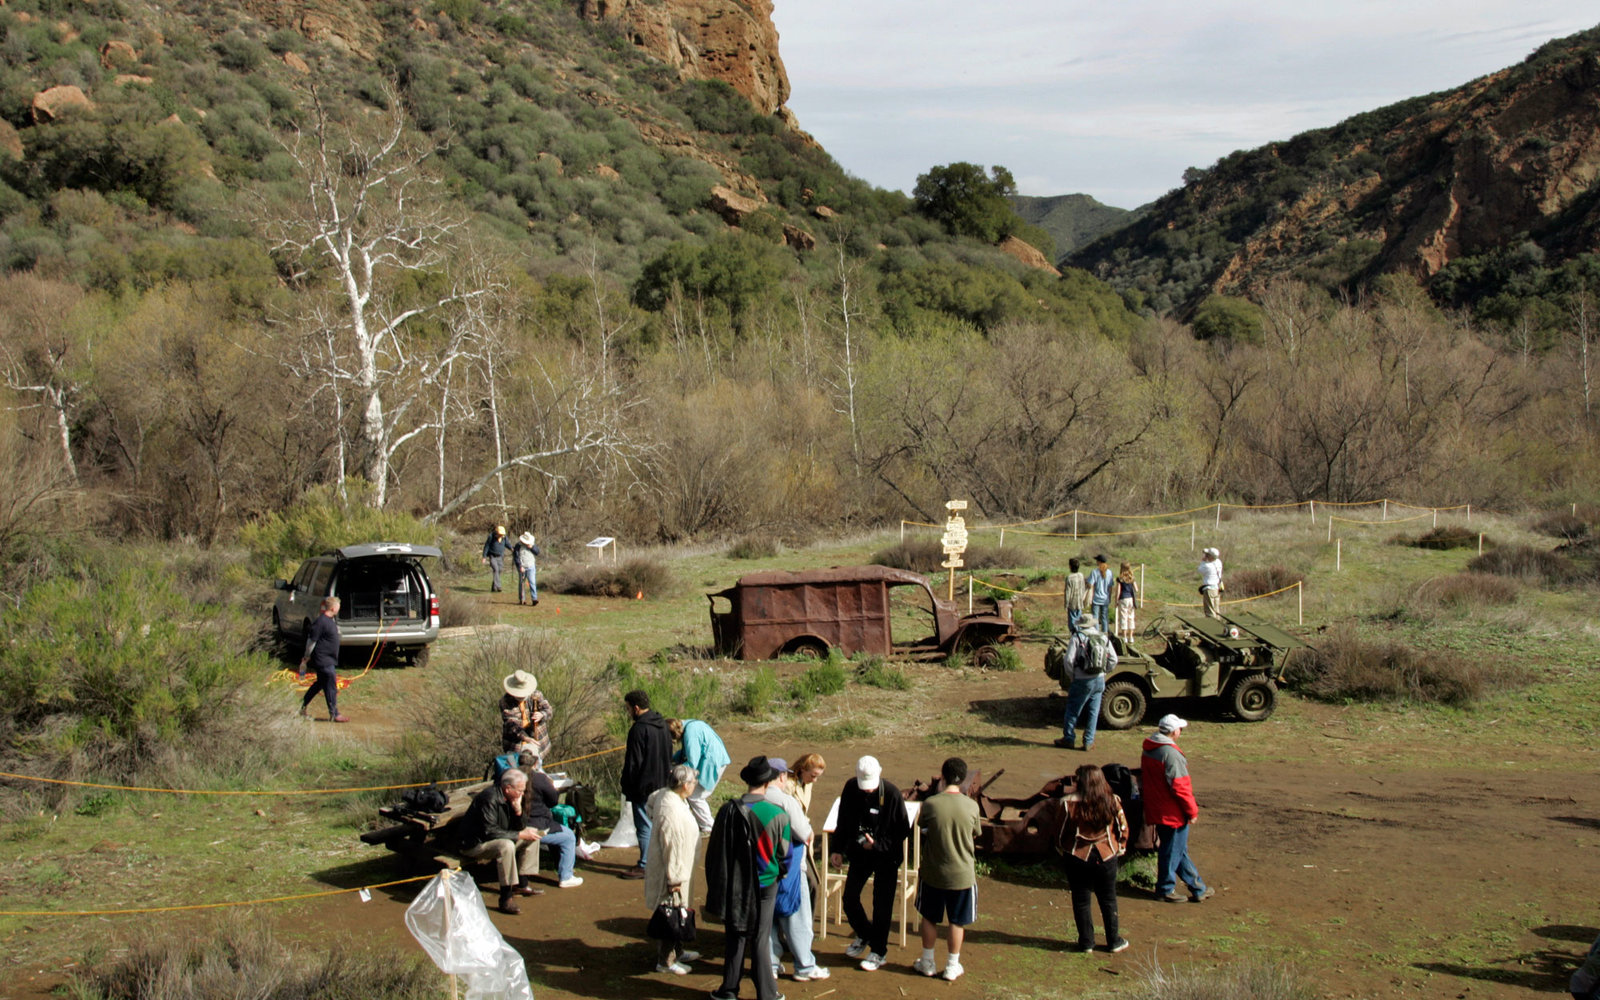 The location of the MASH television series at Malibu Creek State Park is being restored. To show off the restoration and to celebrate the 25th Anniversary of the show' s final episode an event was held for the public with some of the stars. this is a view